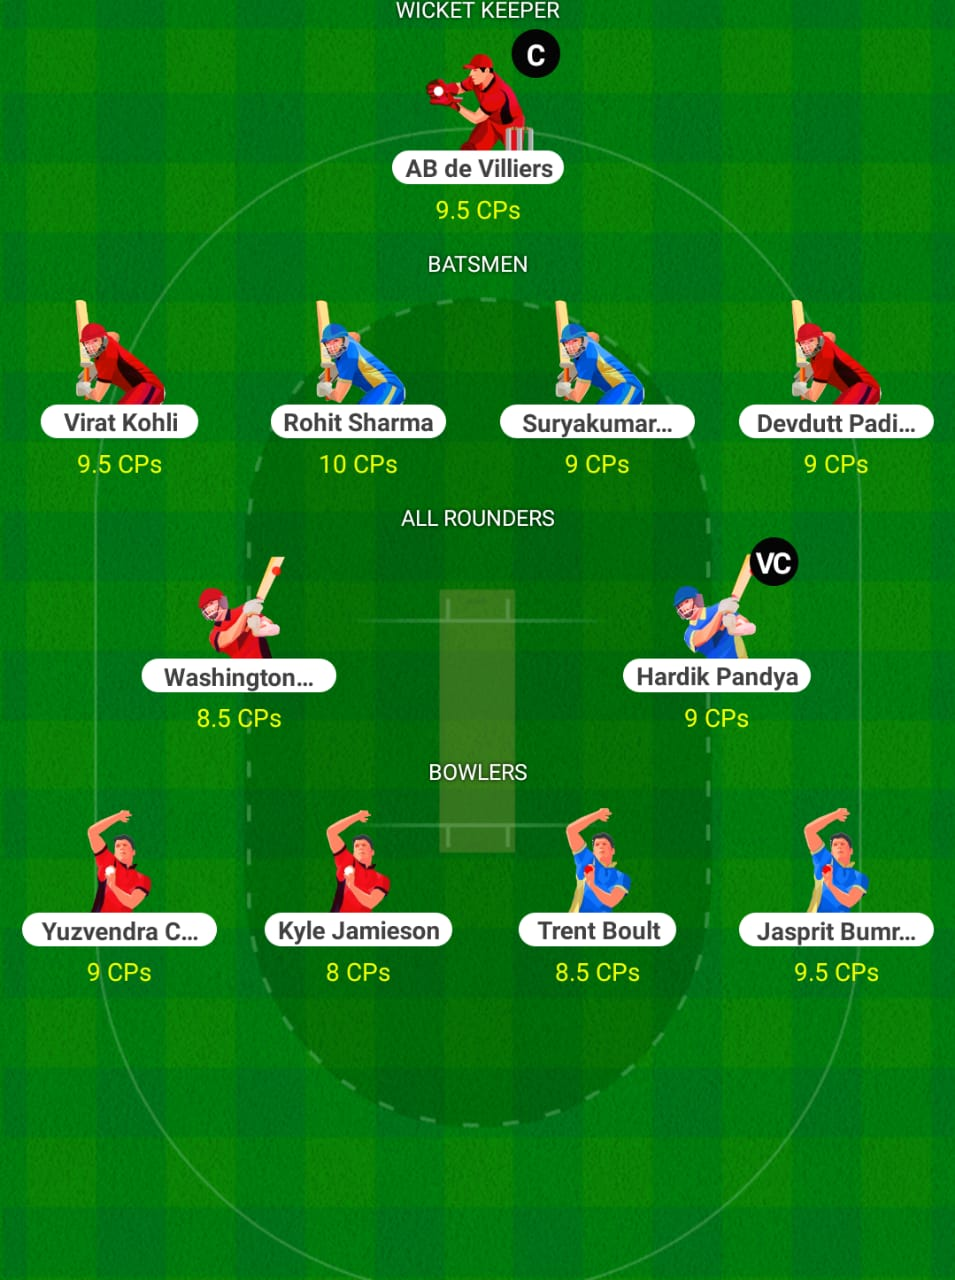 MI vs RCB My11circle Prediction and Best Fantasy Pick for today IPL 2021 Match 1, April 9th, 2021